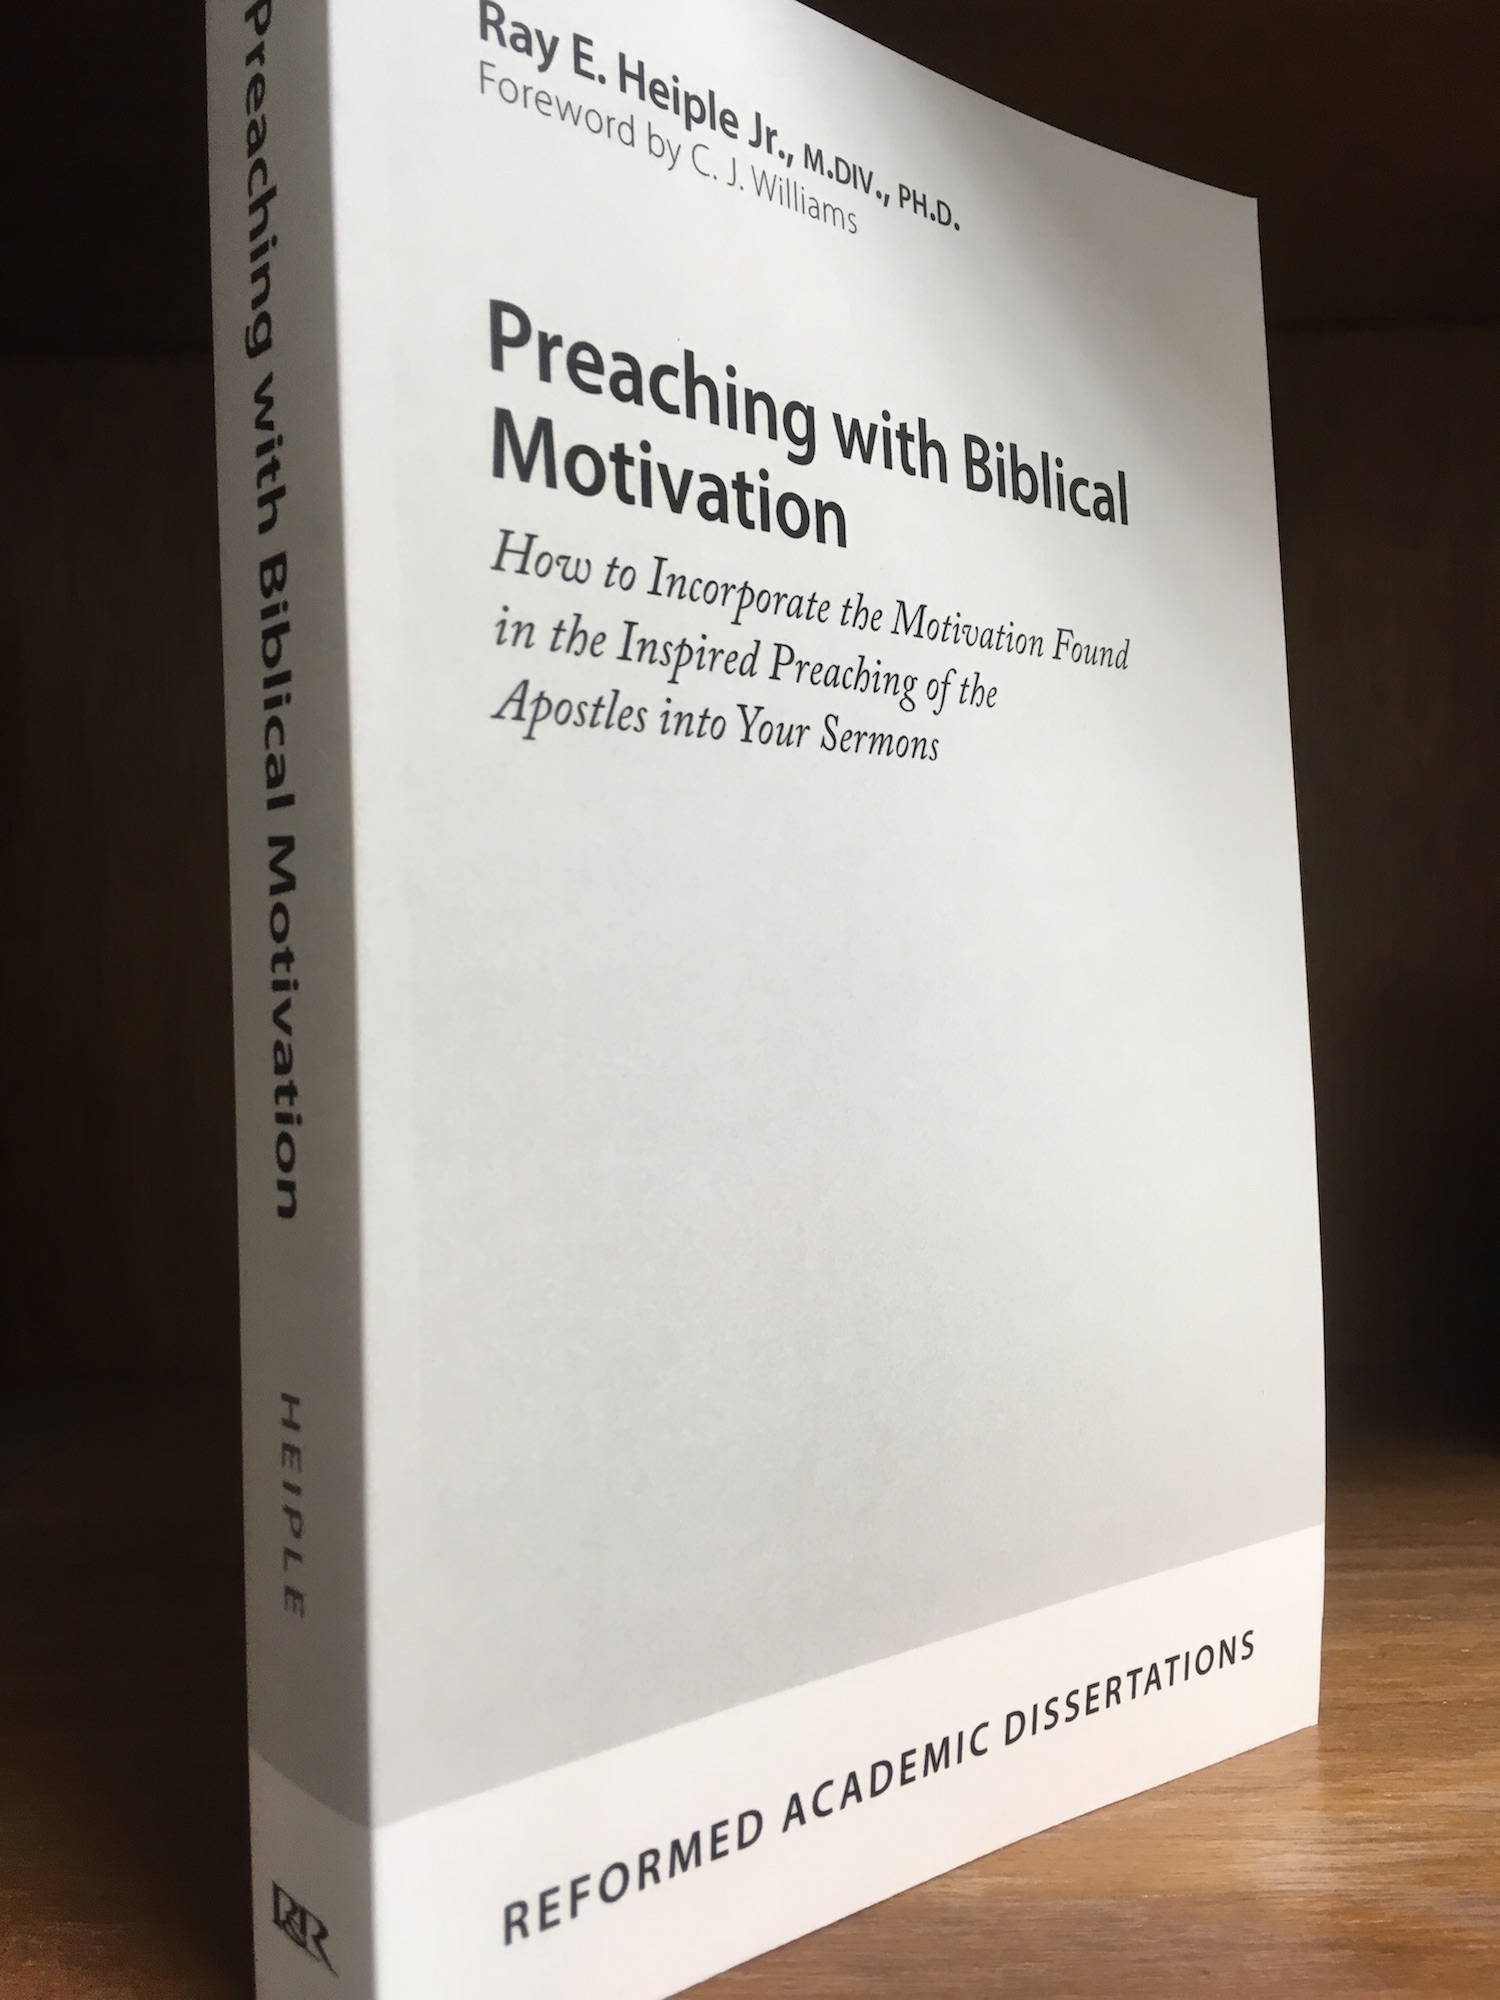 Preaching with Biblical Motivation_photo small